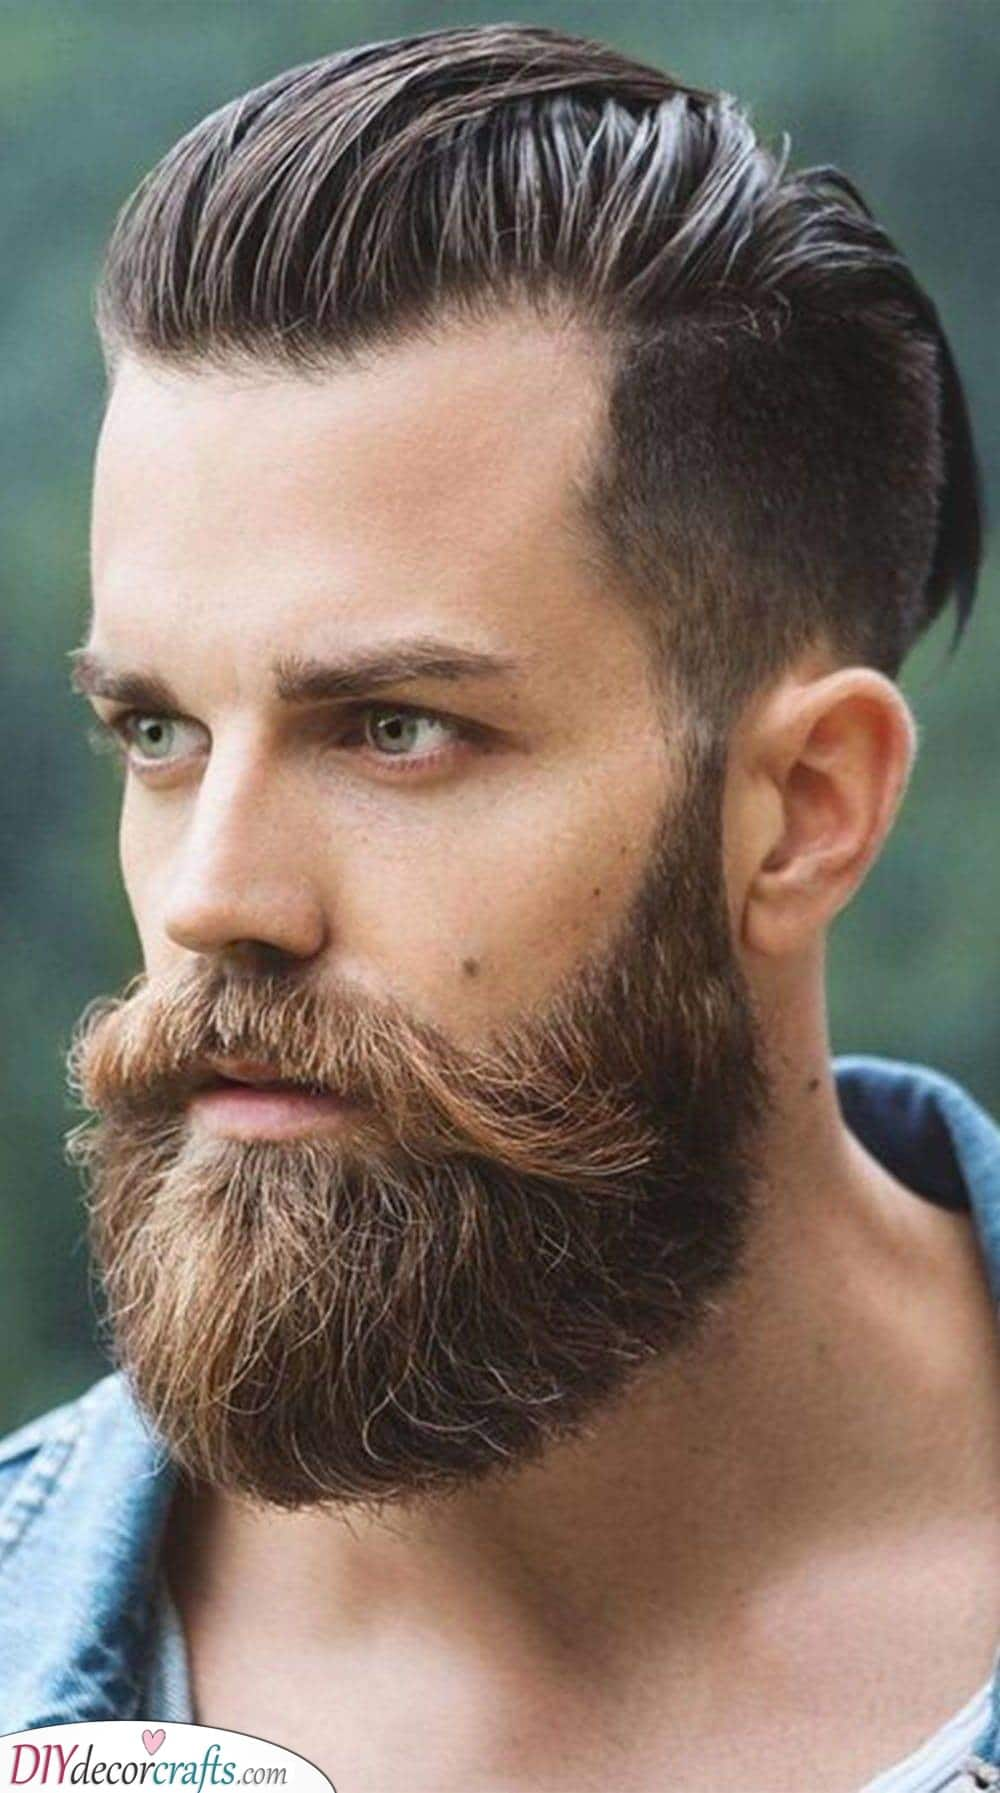 A Perfect Pairing - A Pompadour and Beard